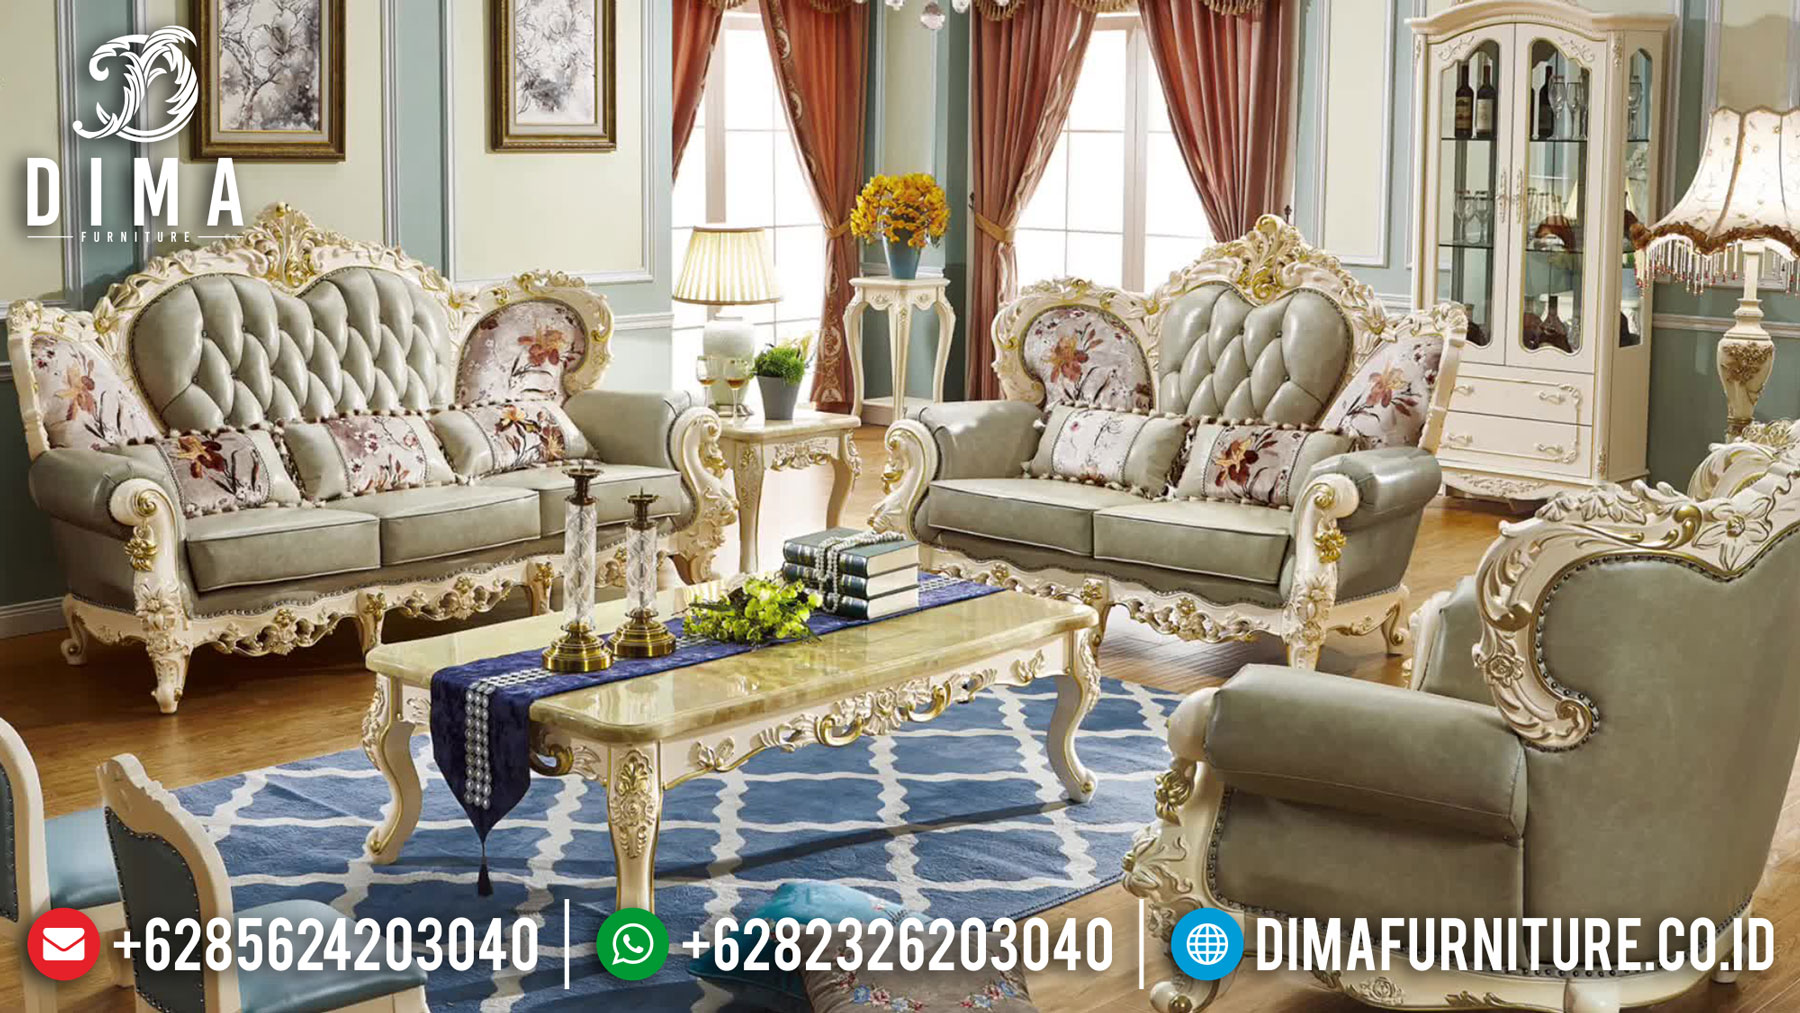 New Model Sofa Ruang Tamu Mewah Ukiran Luxurious Carving TTJ-1622